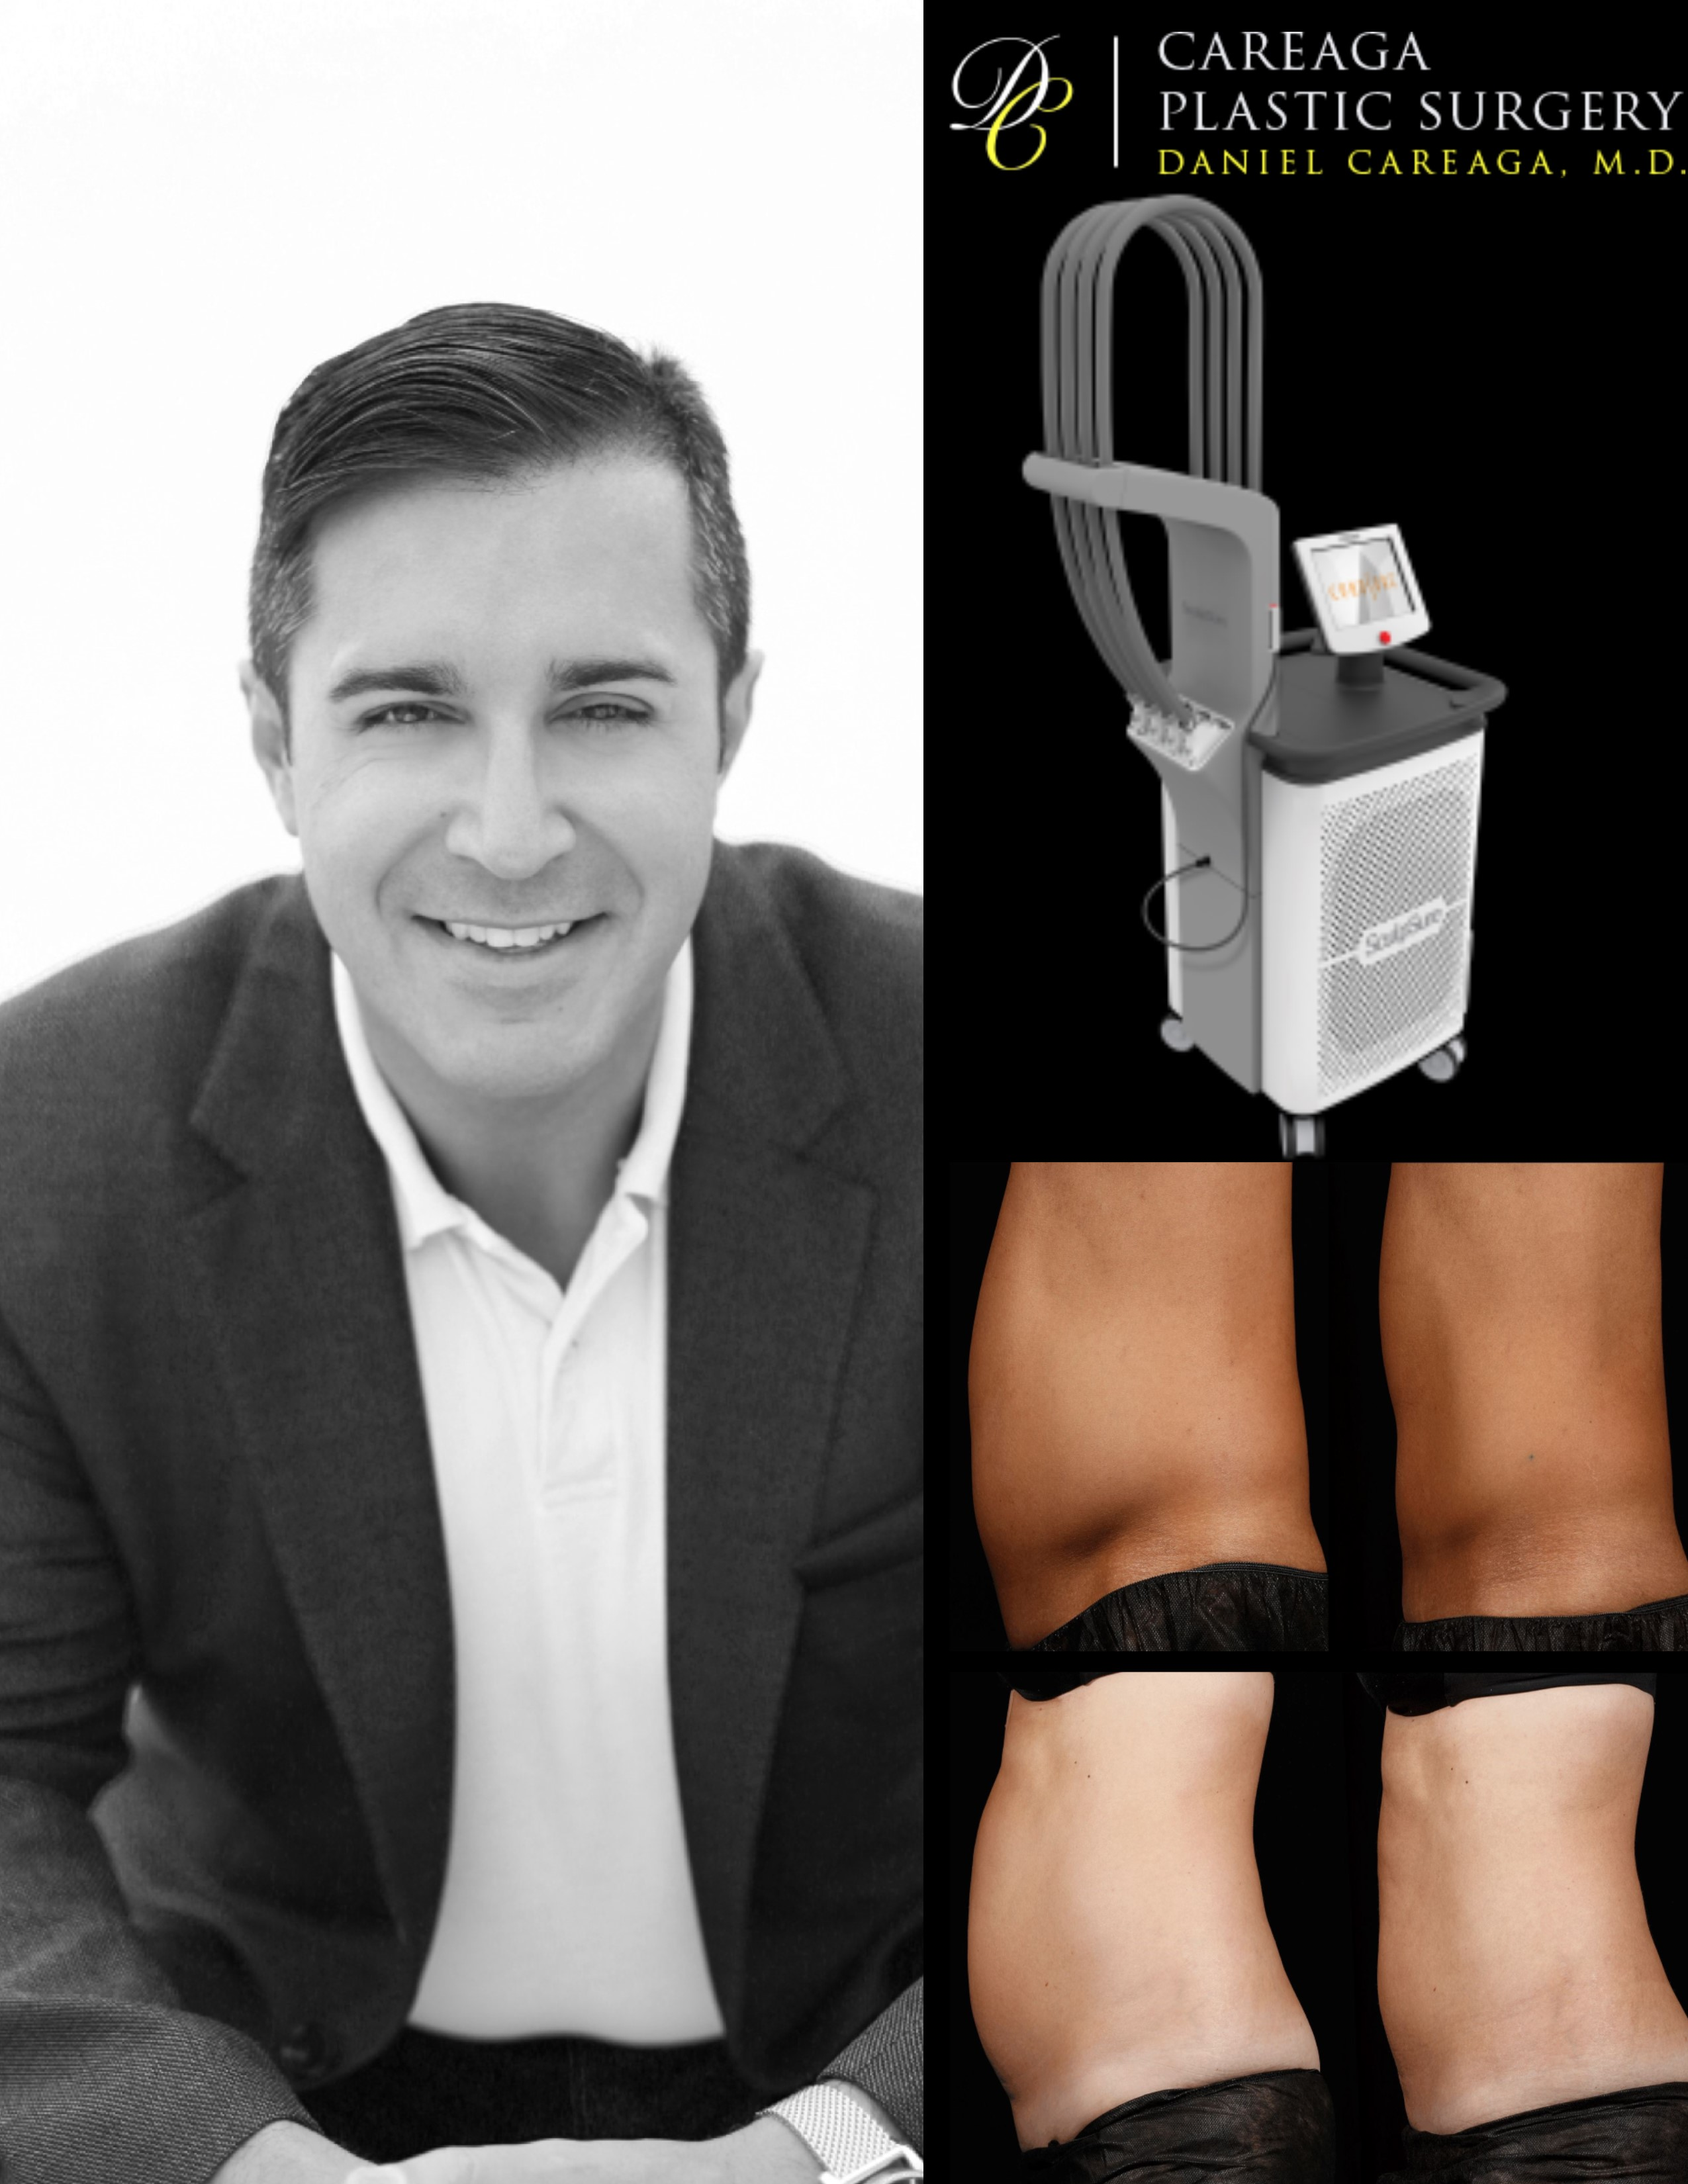 Careaga Plastic Surgery Introduces New Breakthrough Laser Technology For 25% Fat Loss In 25 Minutes